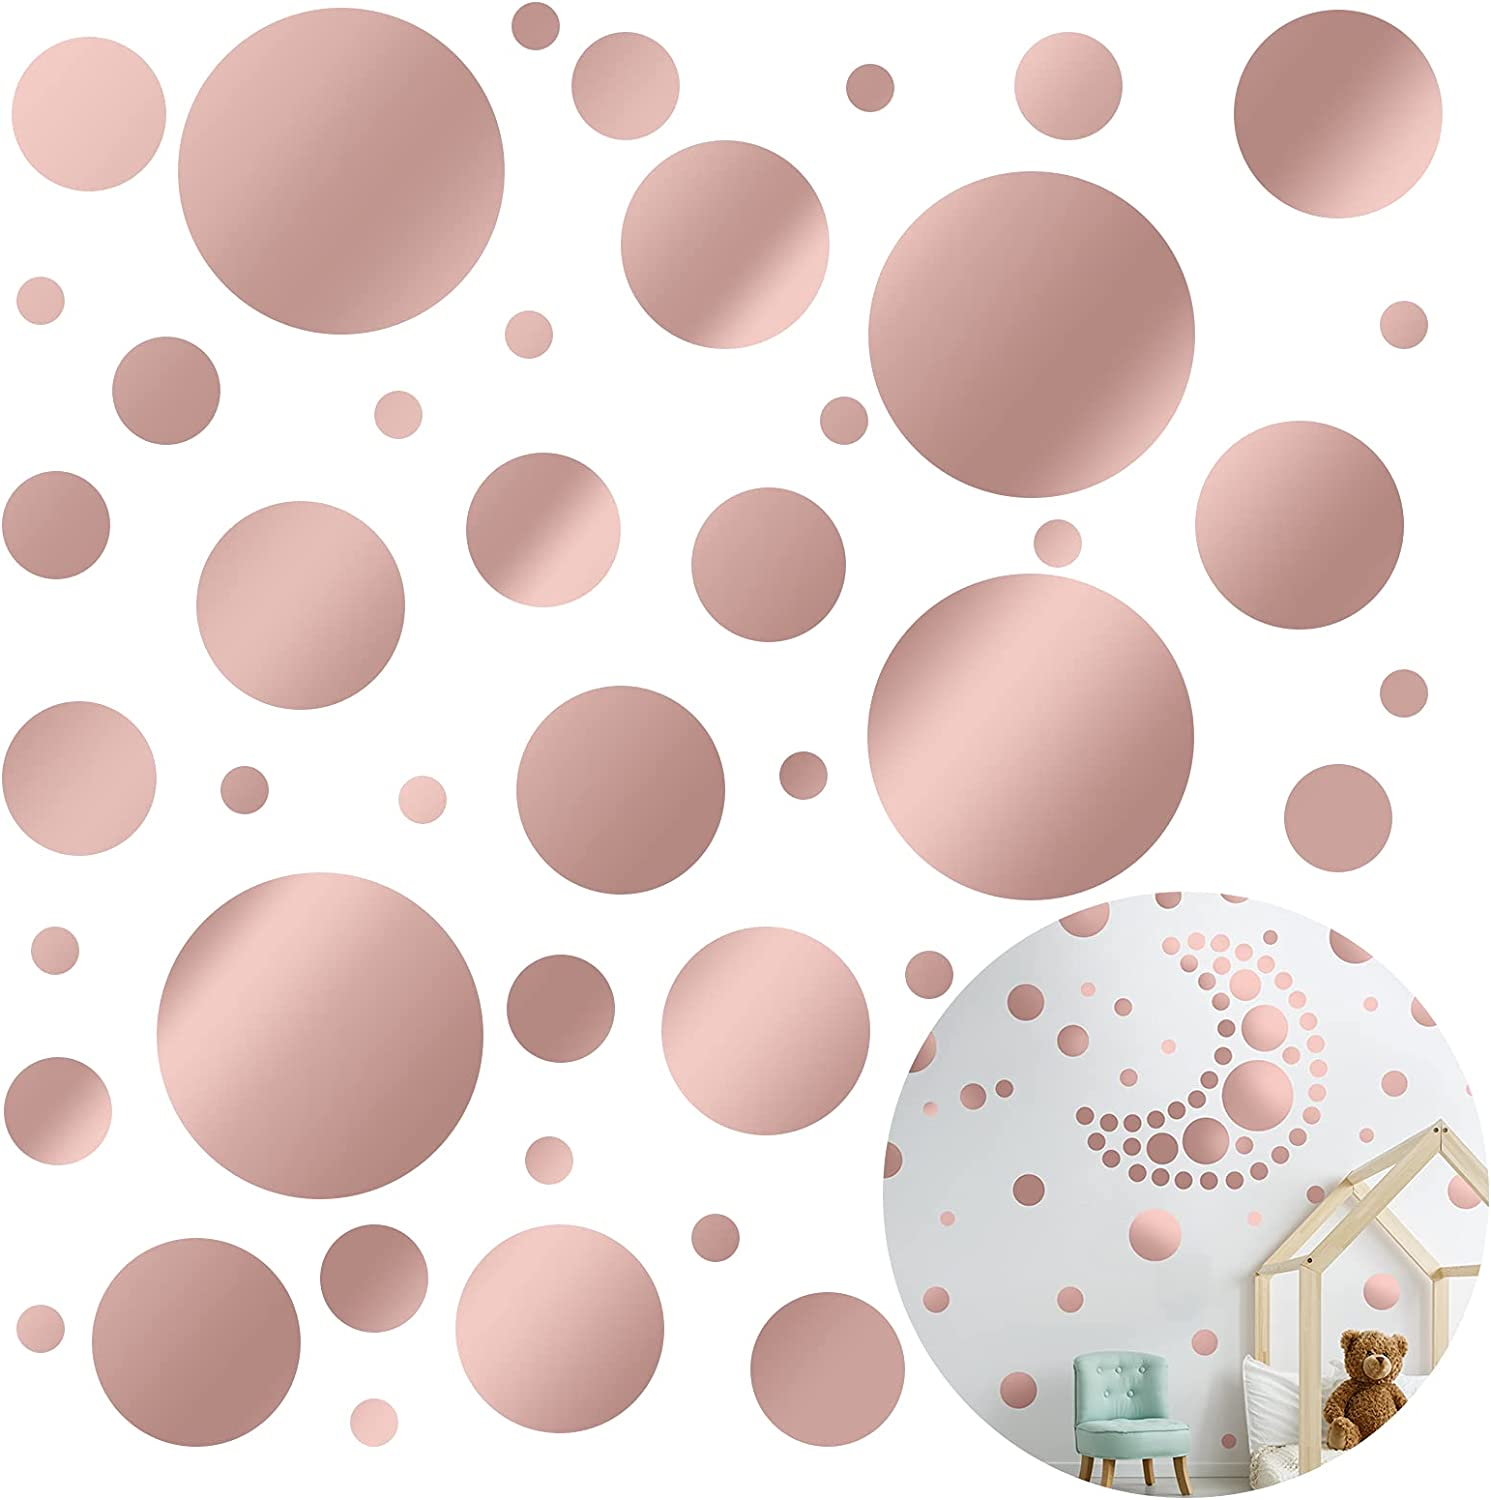 264 Pieces Polka Dot Wall Decals Dot Wall Stickers Peel and Stick PVC Dot Wall Decor for Kids Baby Bedroom Living Room Nursery Home Decorations (Rose Gold)